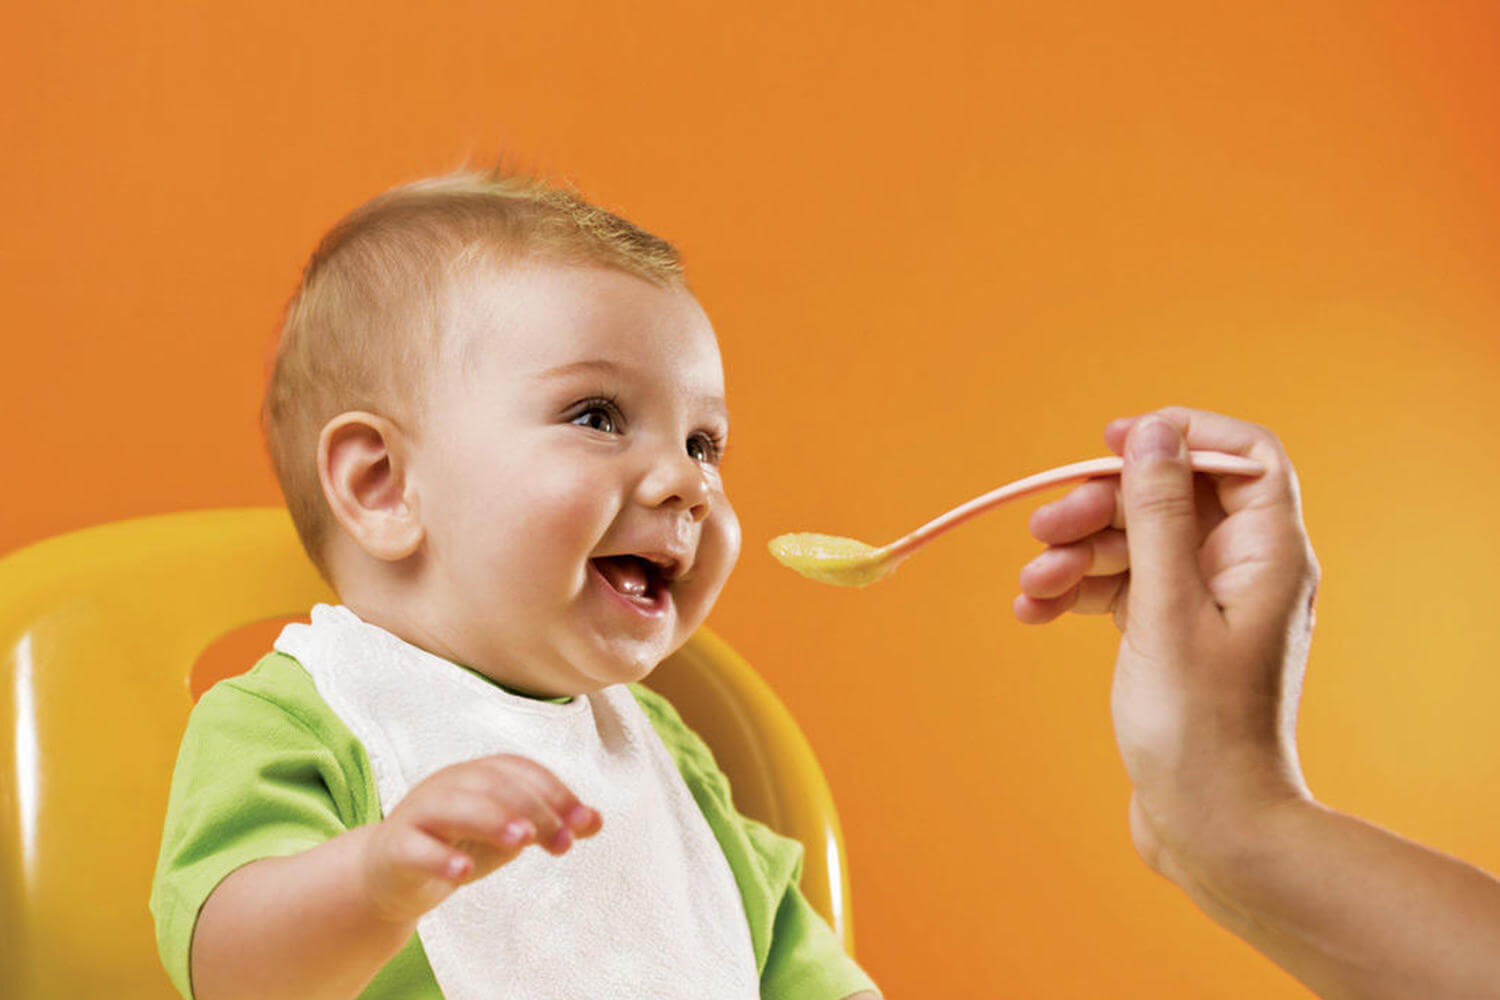 make sure your baby has a good relationship with food